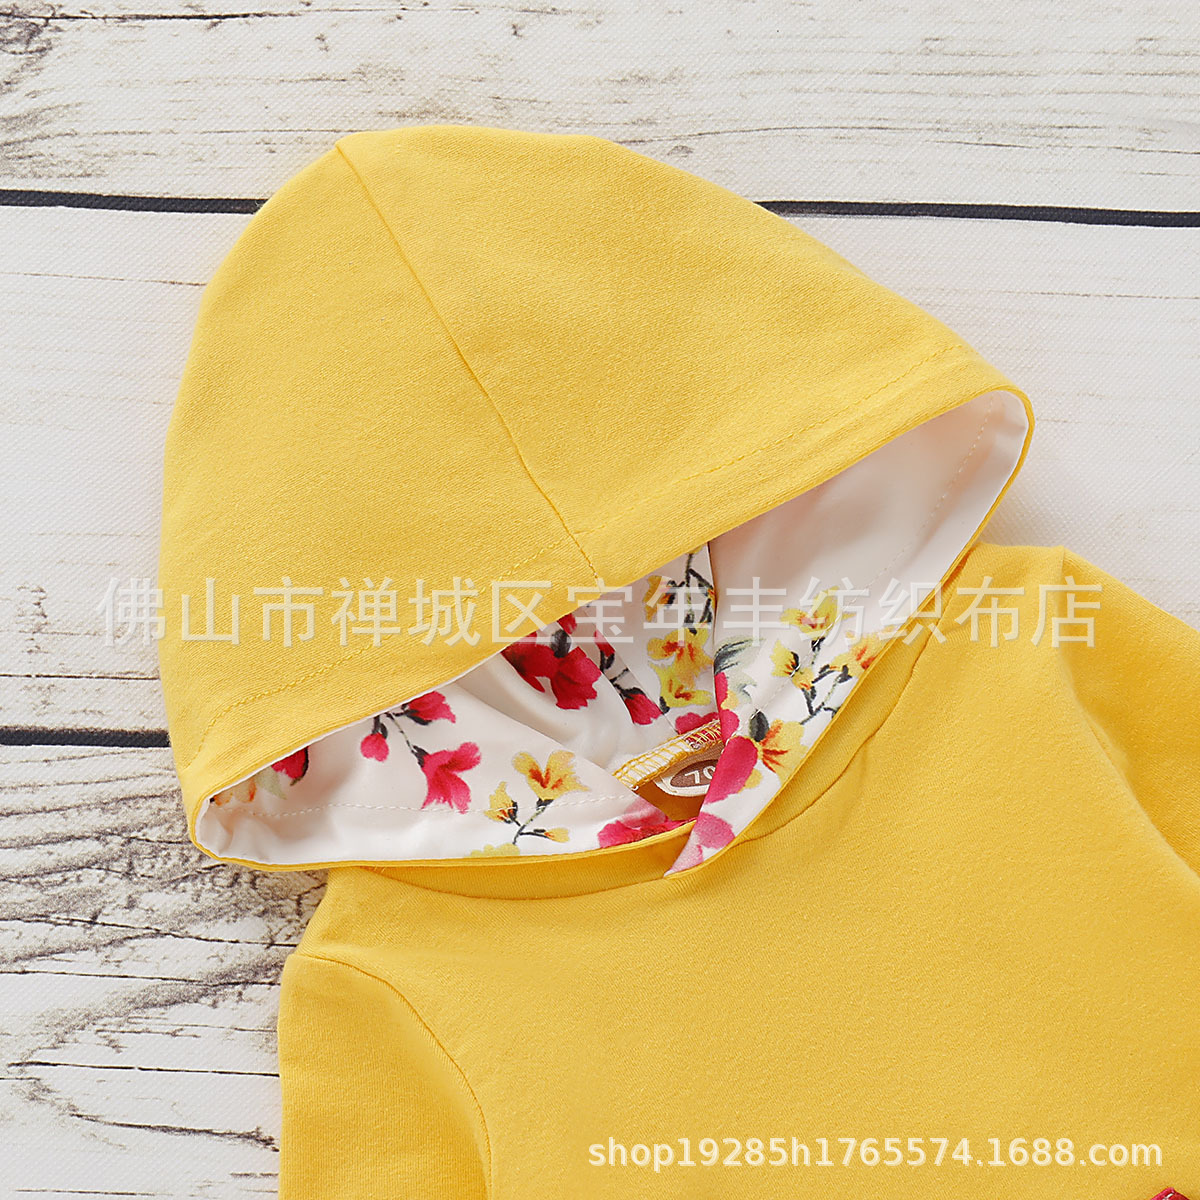 Children's Clothing  Striped Long-Sleeved Casual Printing Hooded  set D09.21 2